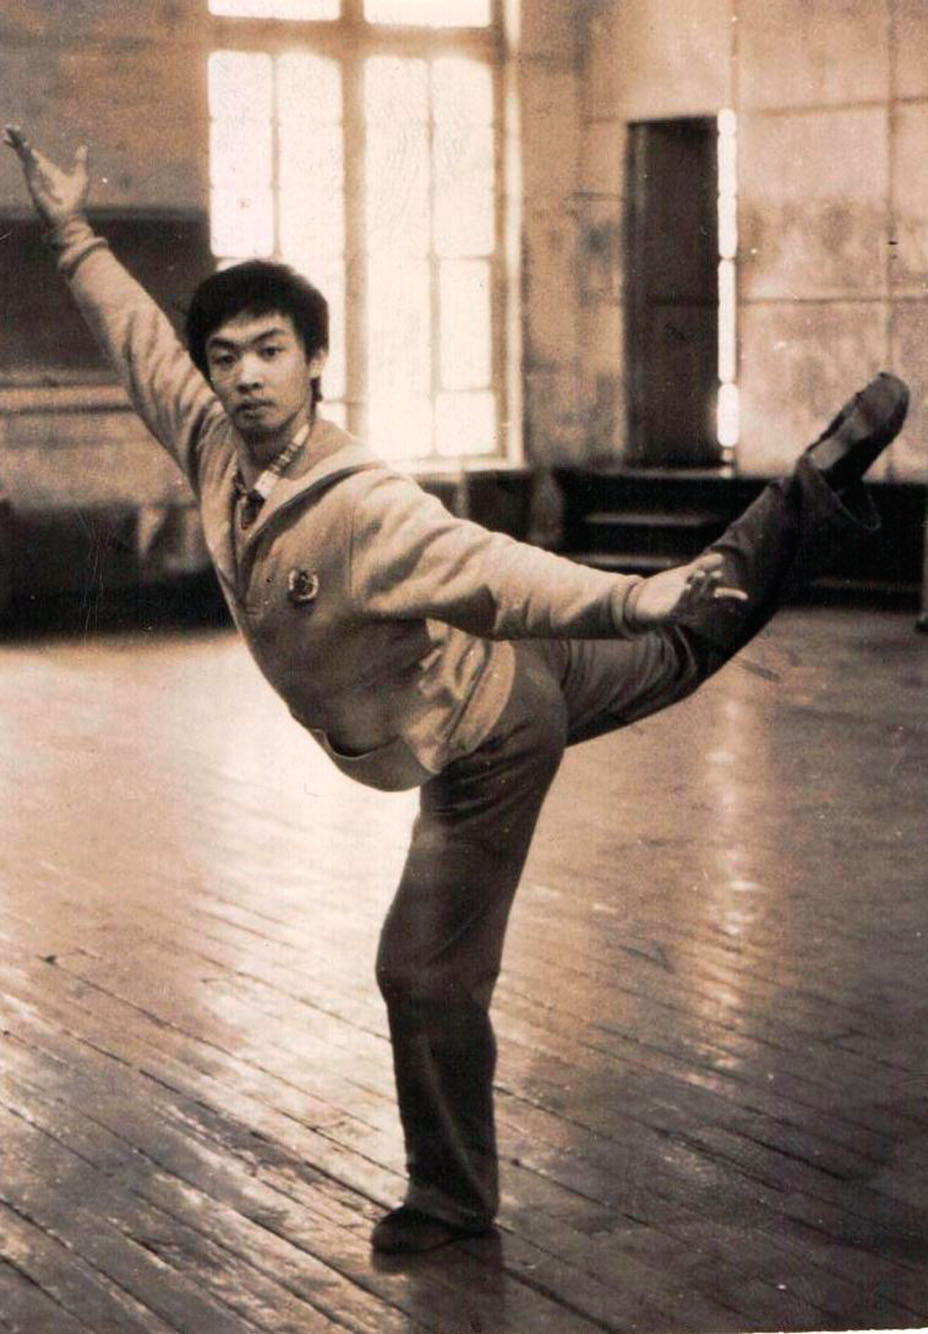 Pre-transition Jin was a professional dancer in New York in the early '90s.